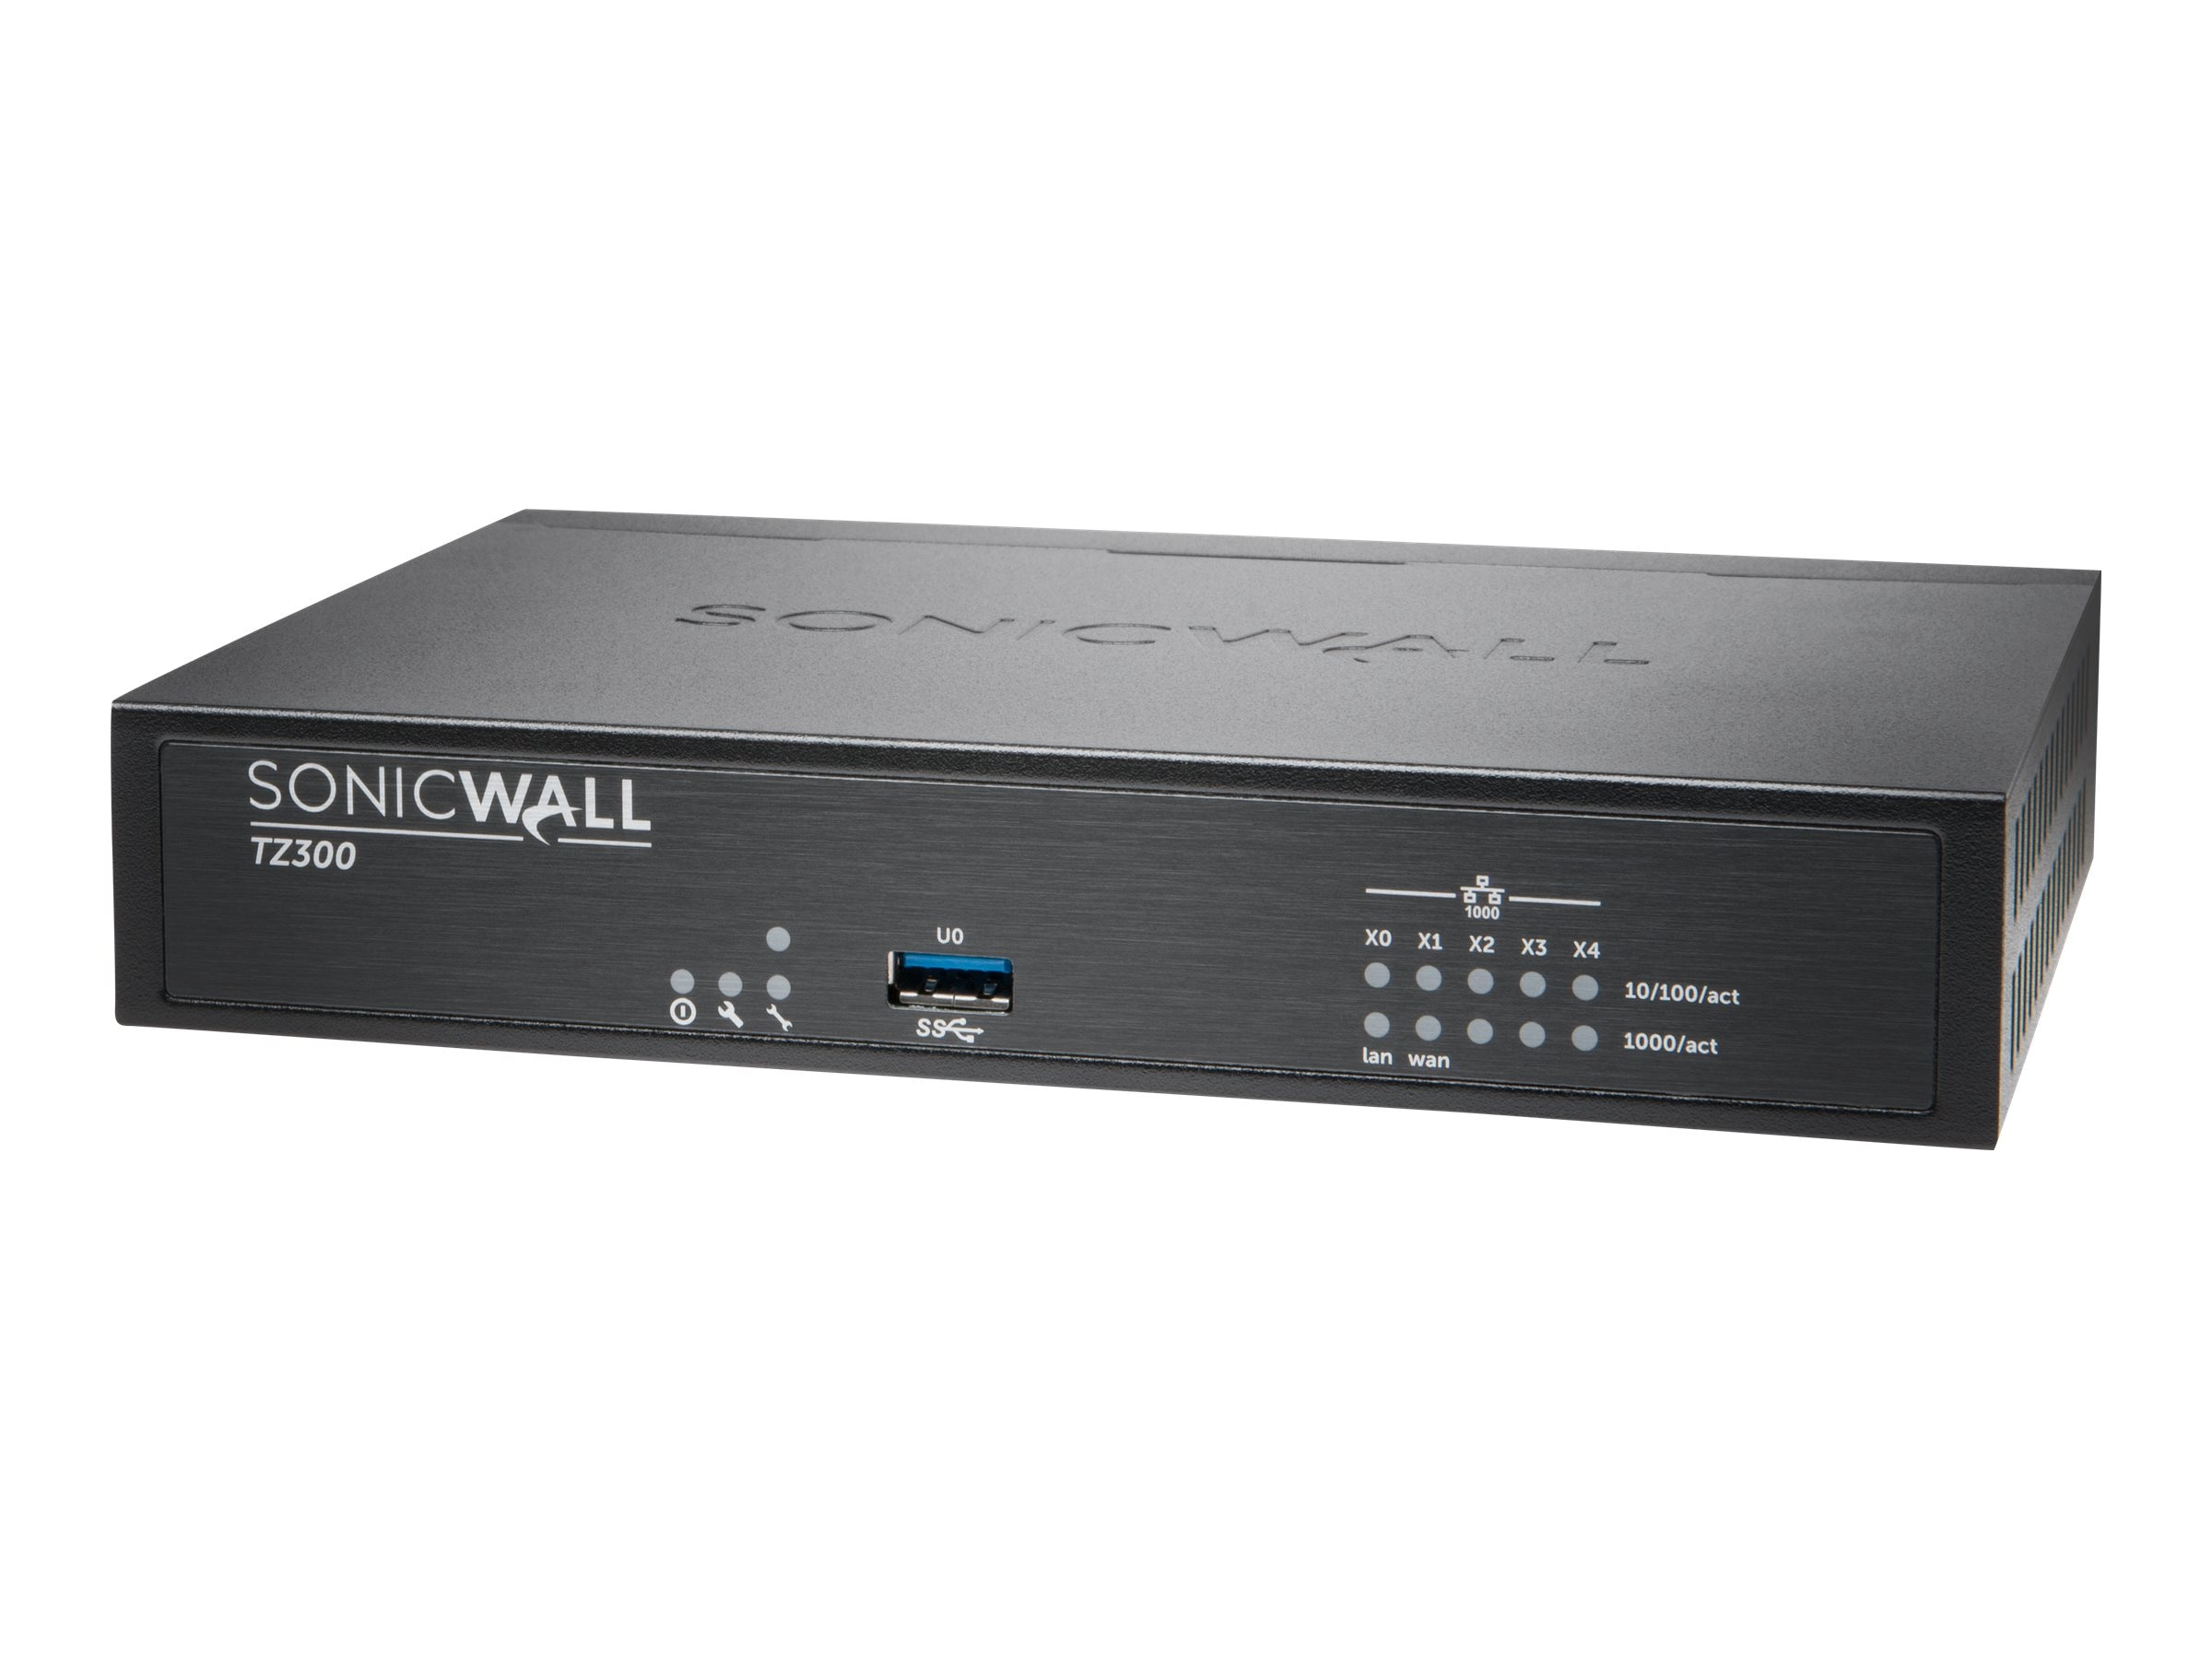 SonicWALL SonicWALL TZ300 Firewall with TotalSecure (1 Year)